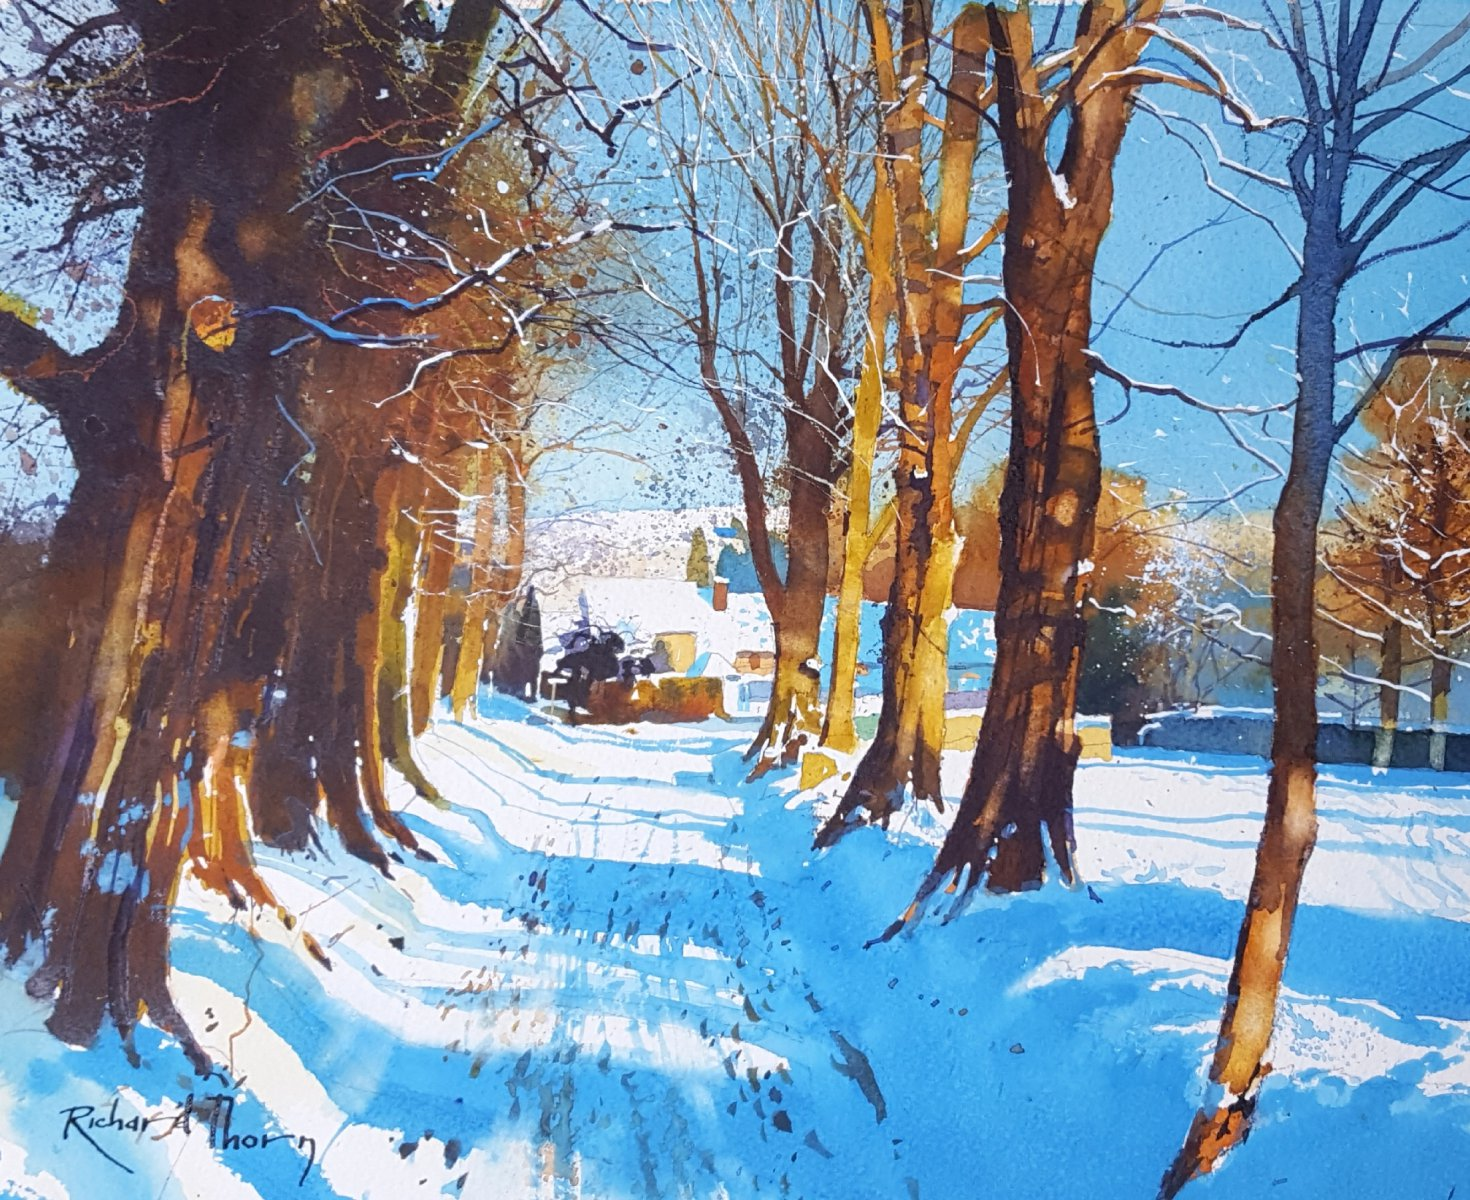 Winter avenue - Richard Thorn